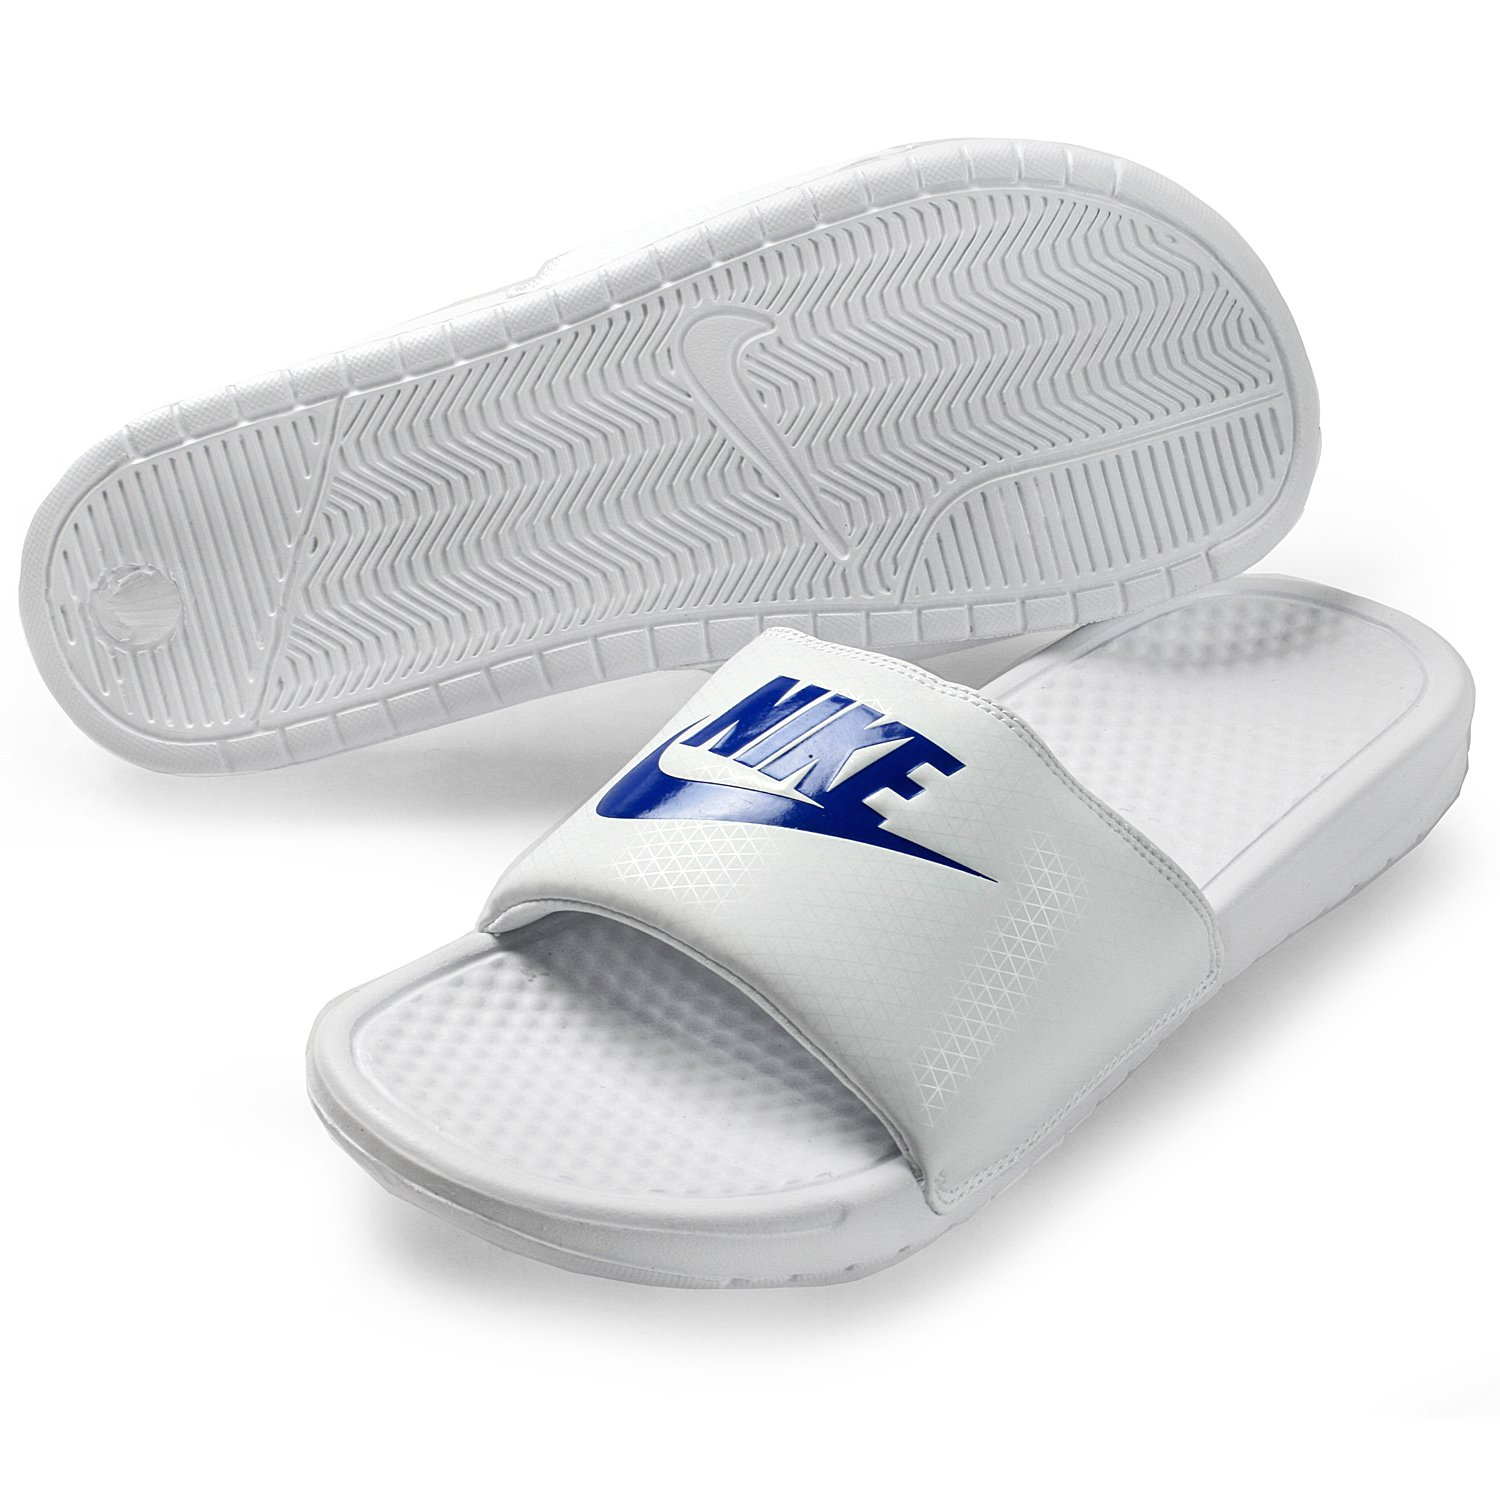 NIKE Benassi JDI Men's Sandals White/Varsity Royal/White 343880-102 (12 D(M) US)